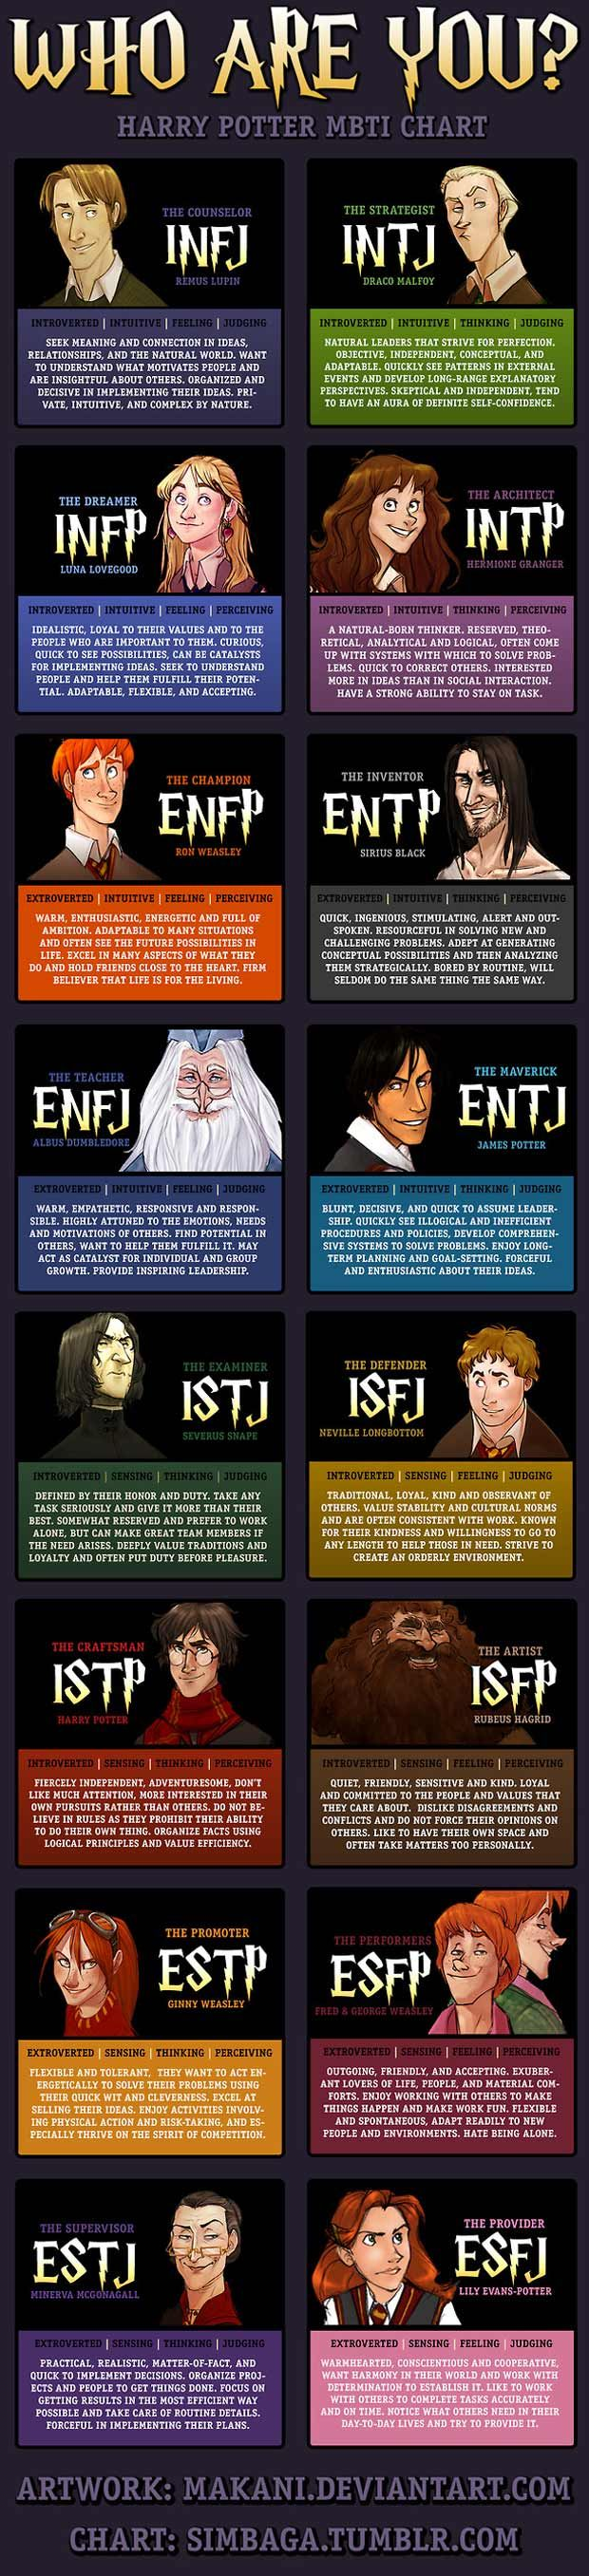 So Cool Harry Potter Personality Mbti Charts Harry Potter